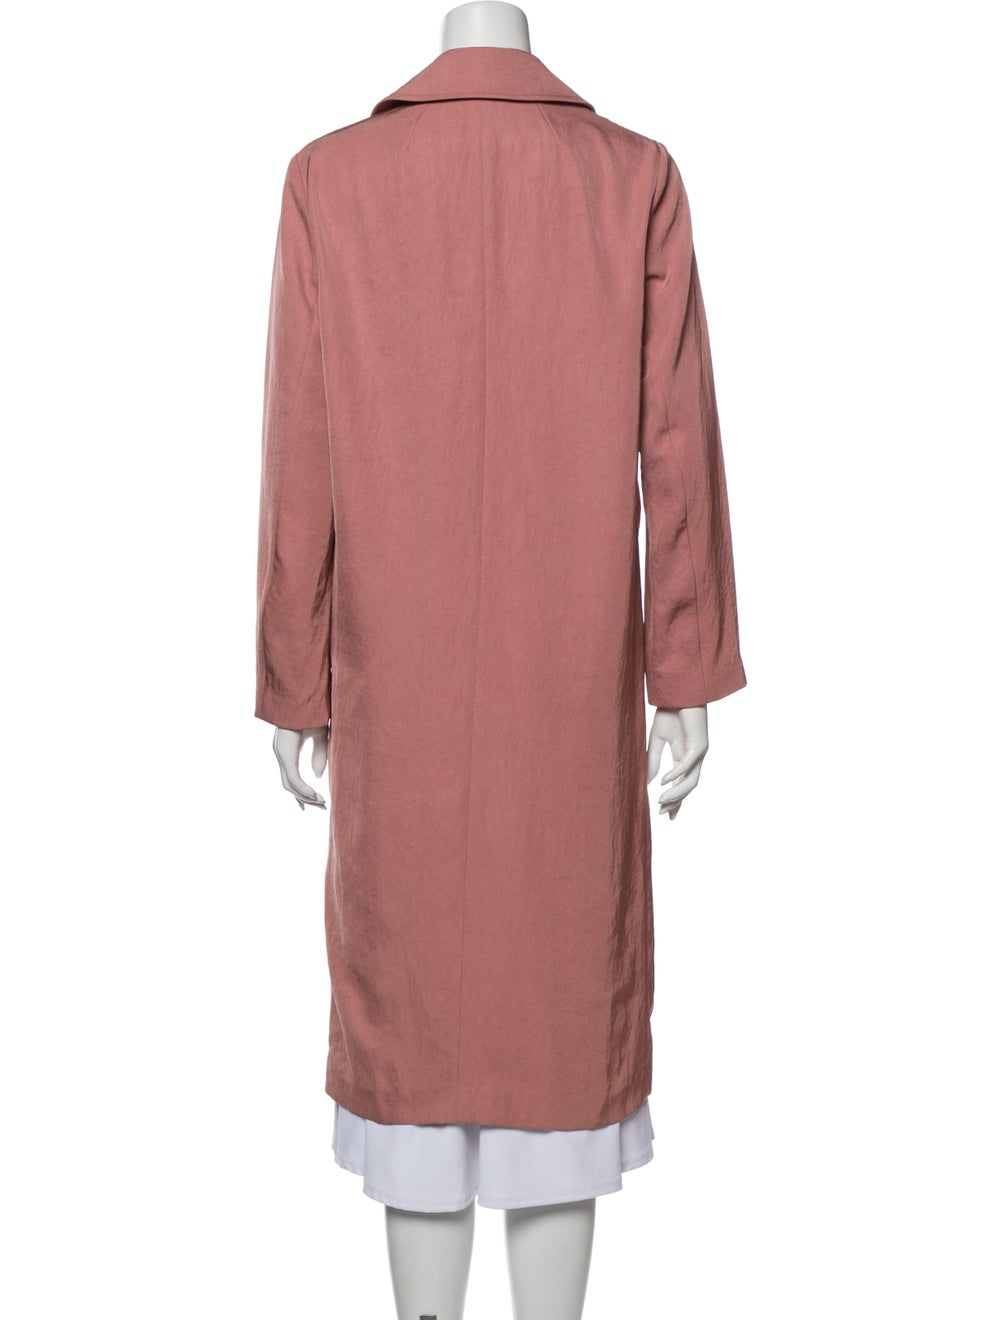 Sandro Trench Coat Pink - image 3